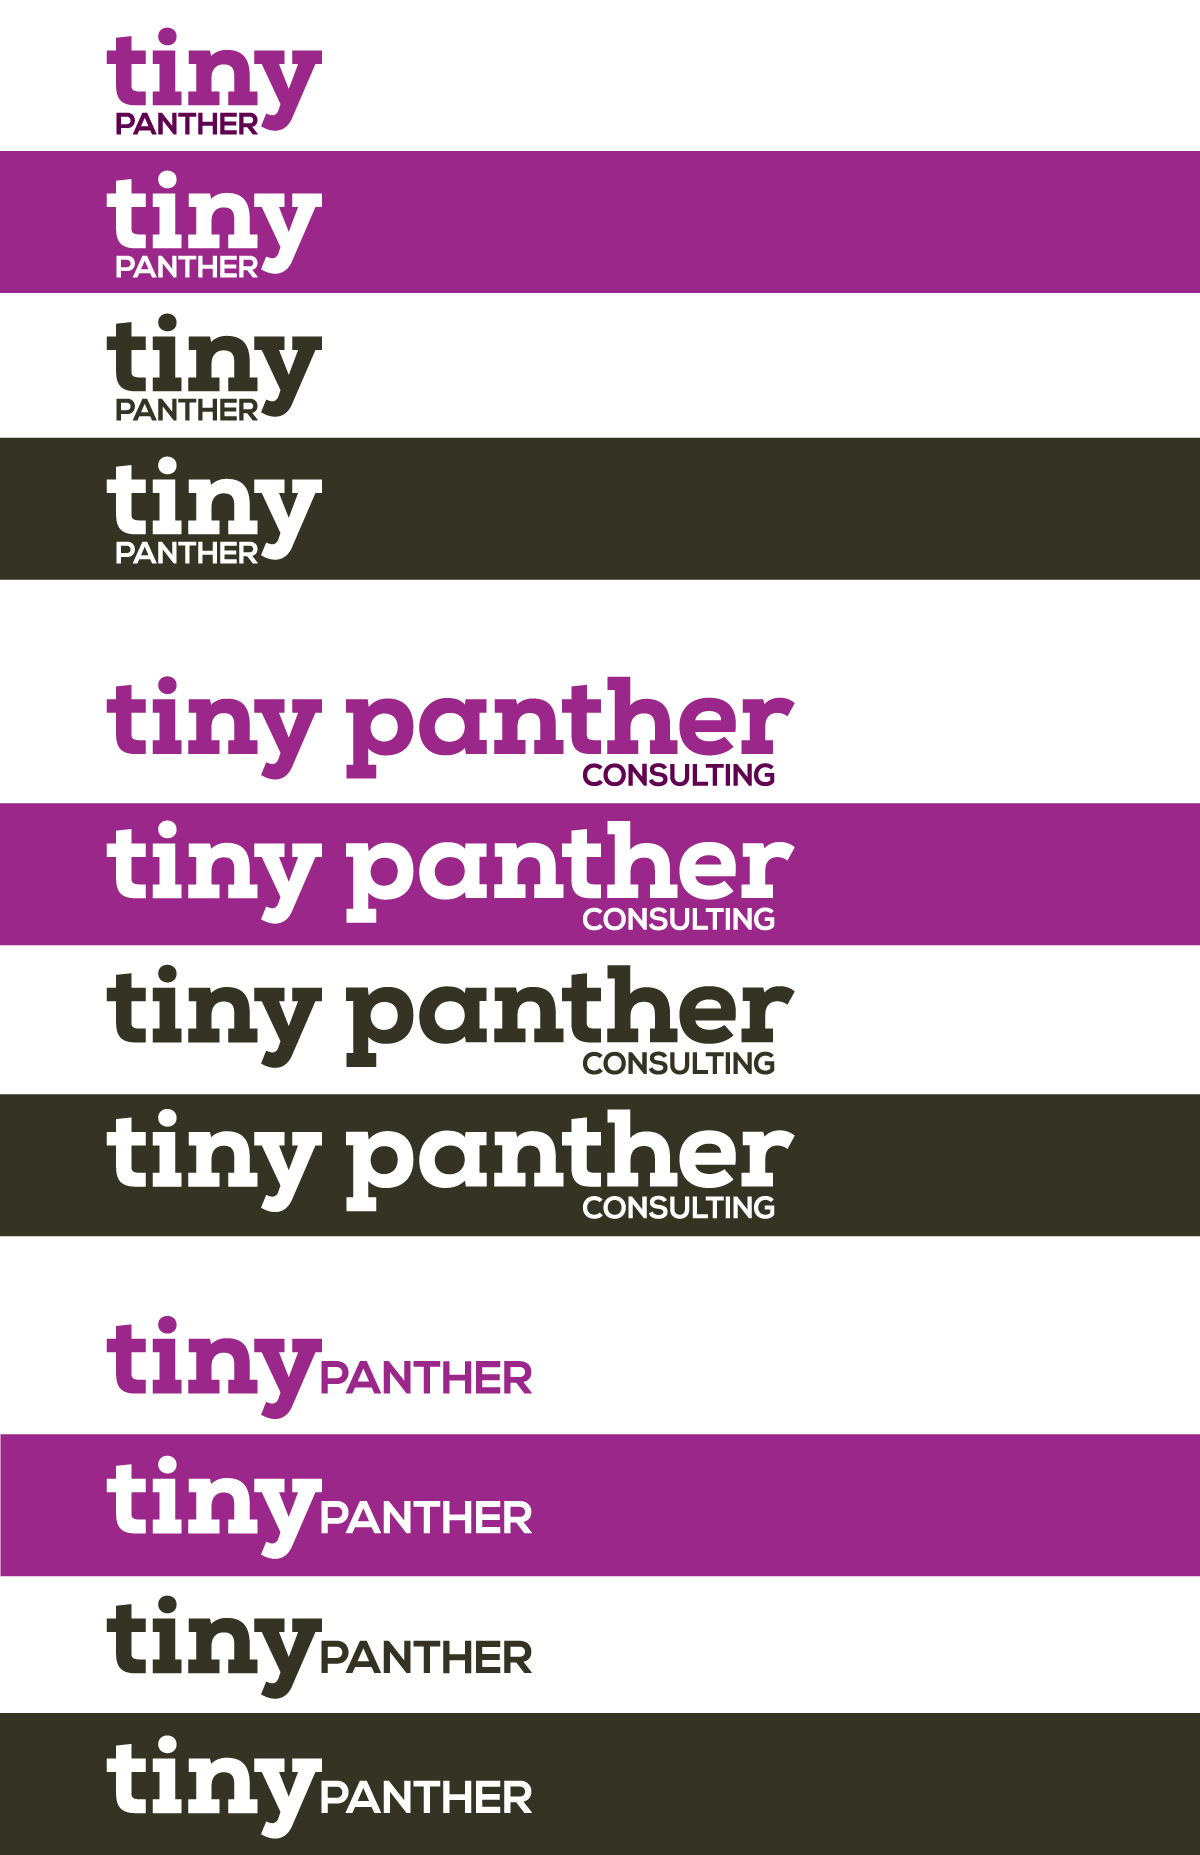 TinyPanther_Style-Guide_1.jpg